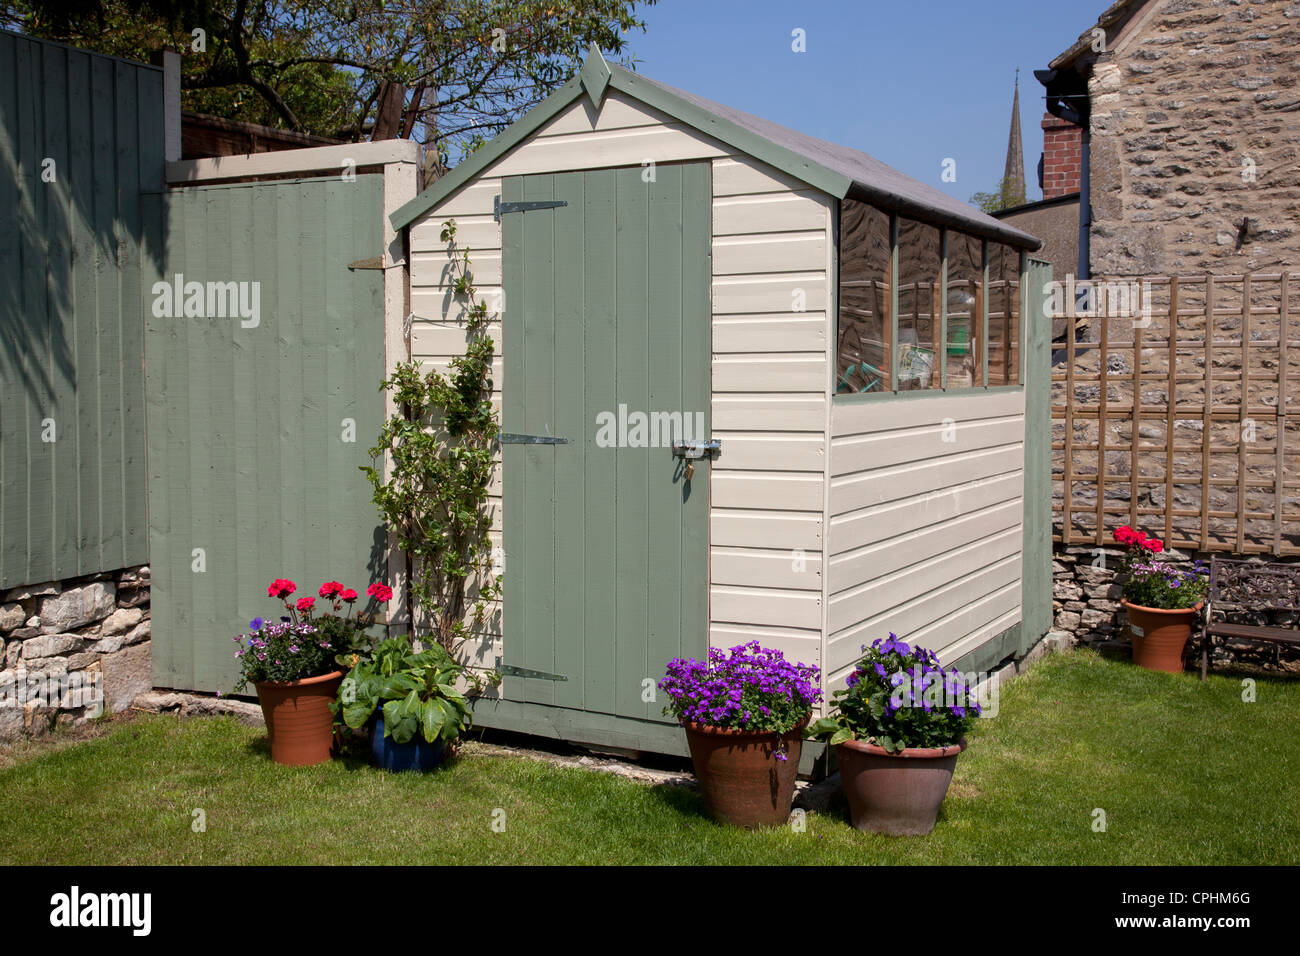 painted garden shed in small English town house garden with pots of flowers - Stock Image